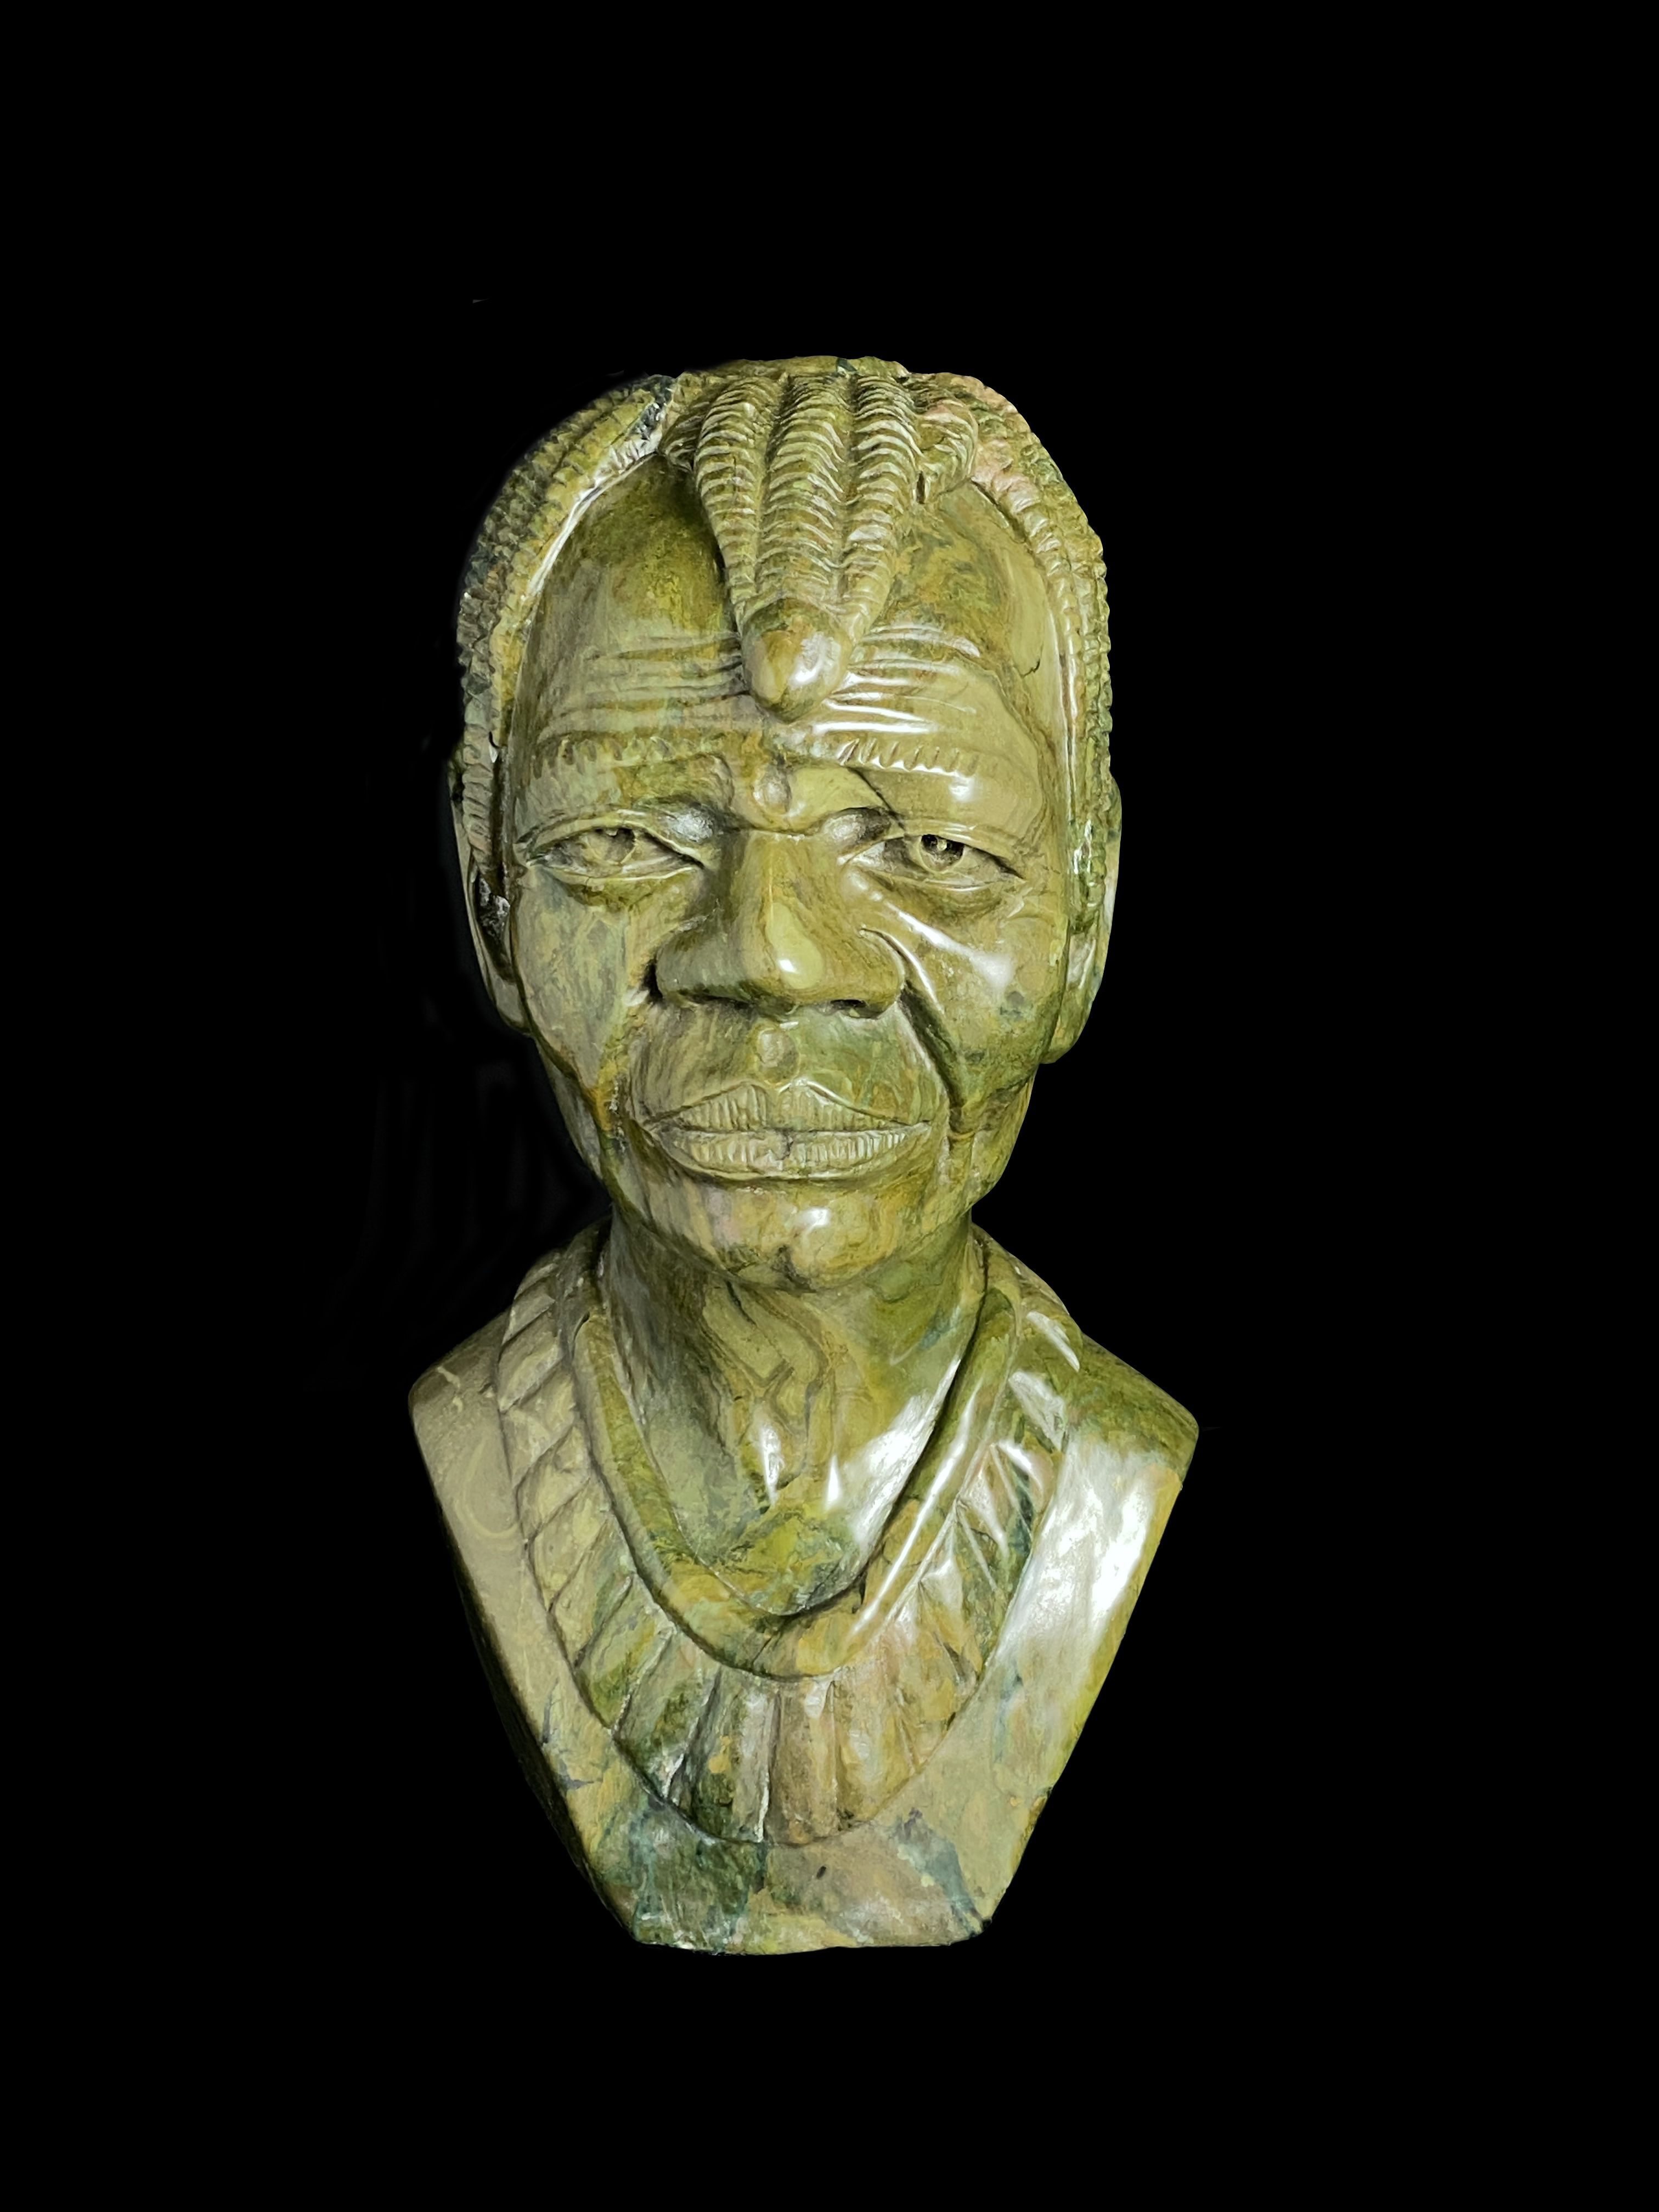 Realistic Bust entitled Noble Man, carved from Verdite Stone - by Tendayi Tandi, Zimbabwe